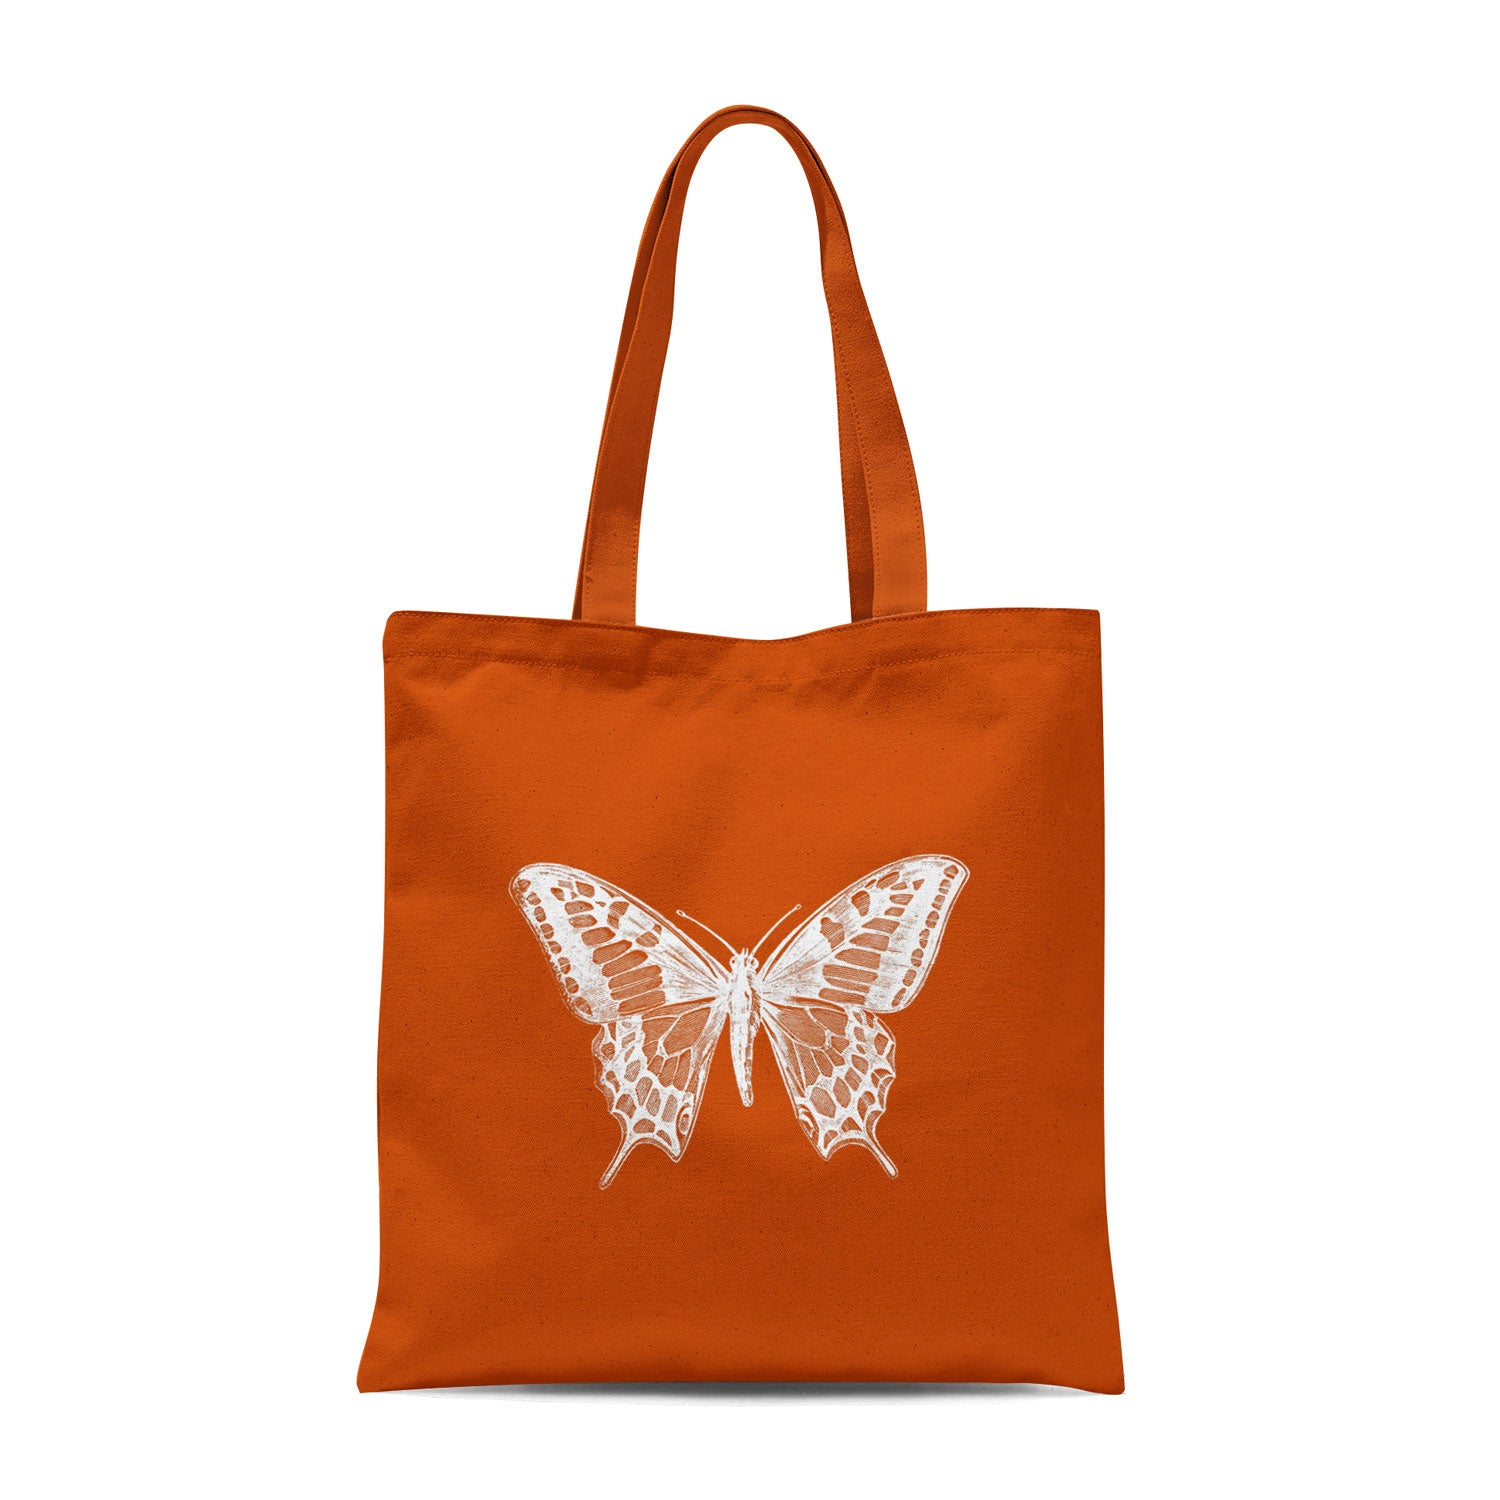 orange tote bag with white butterfly design